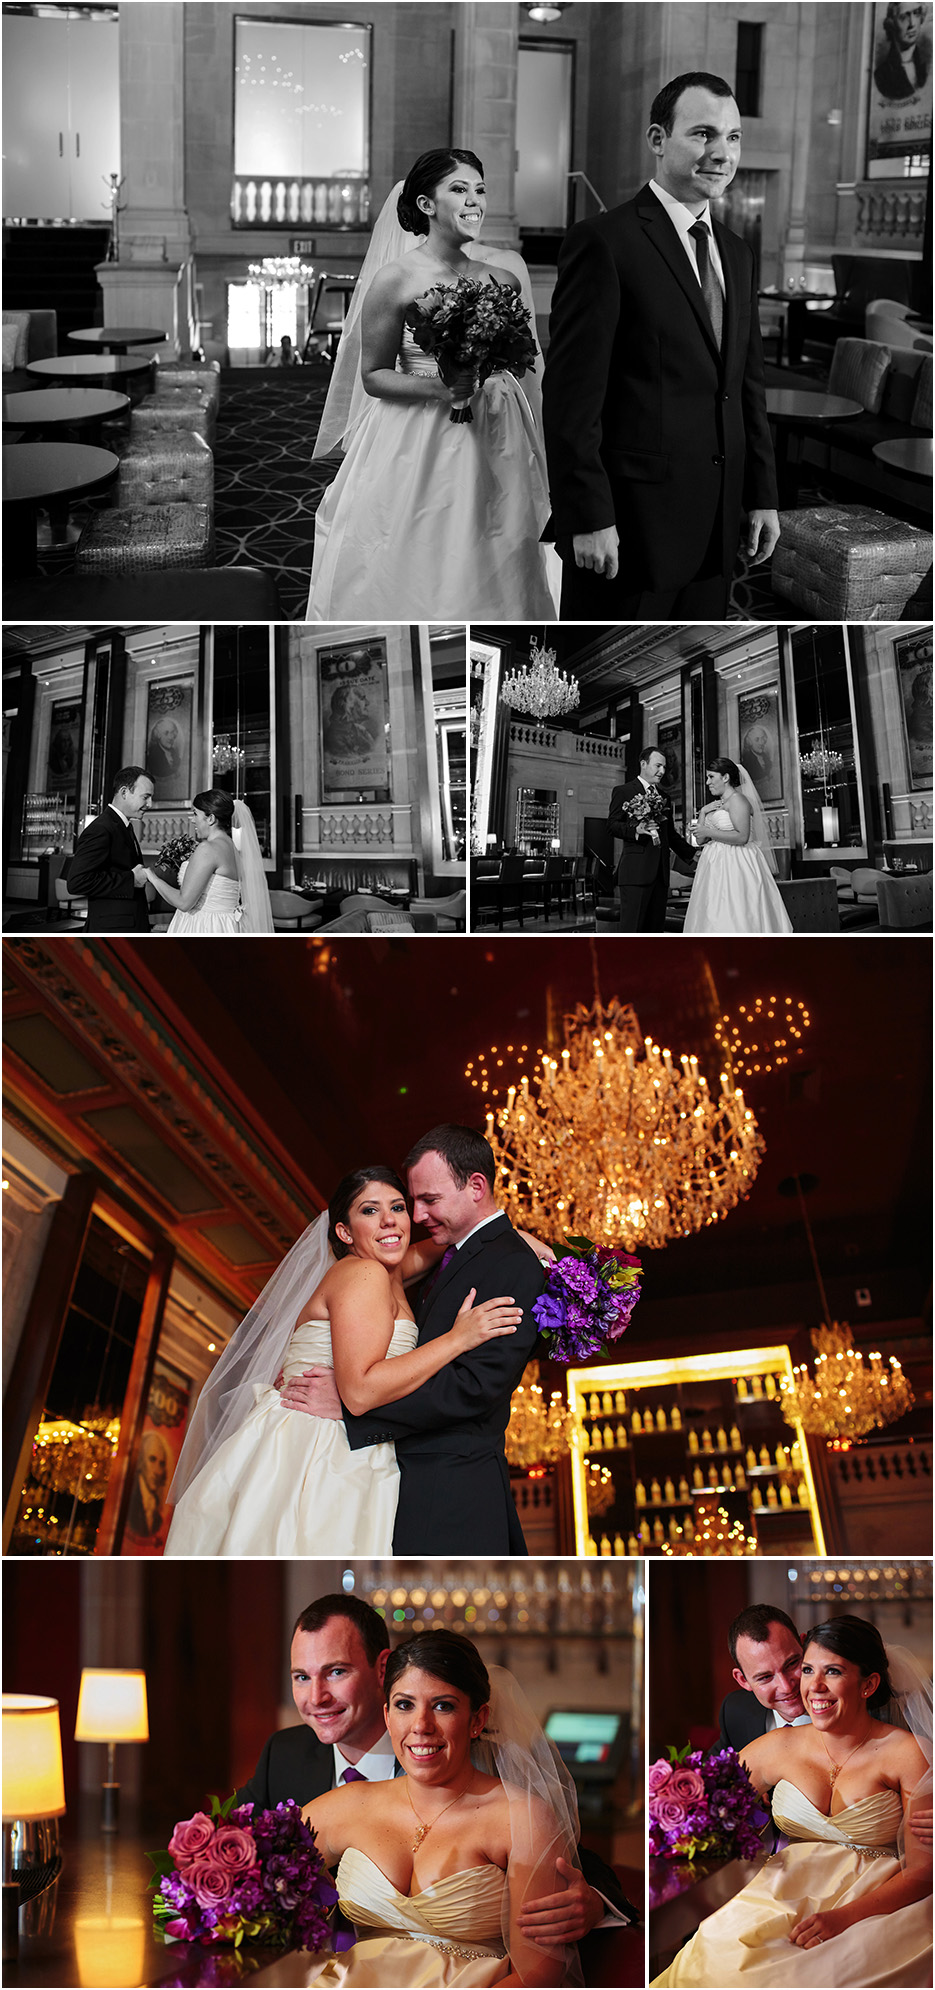 NEW ENGLAND WEDDING PHOTOGRAPHY AT THE LANGHAM HOTEL BY ROBERTO FARREN PHOTOGRAPHY